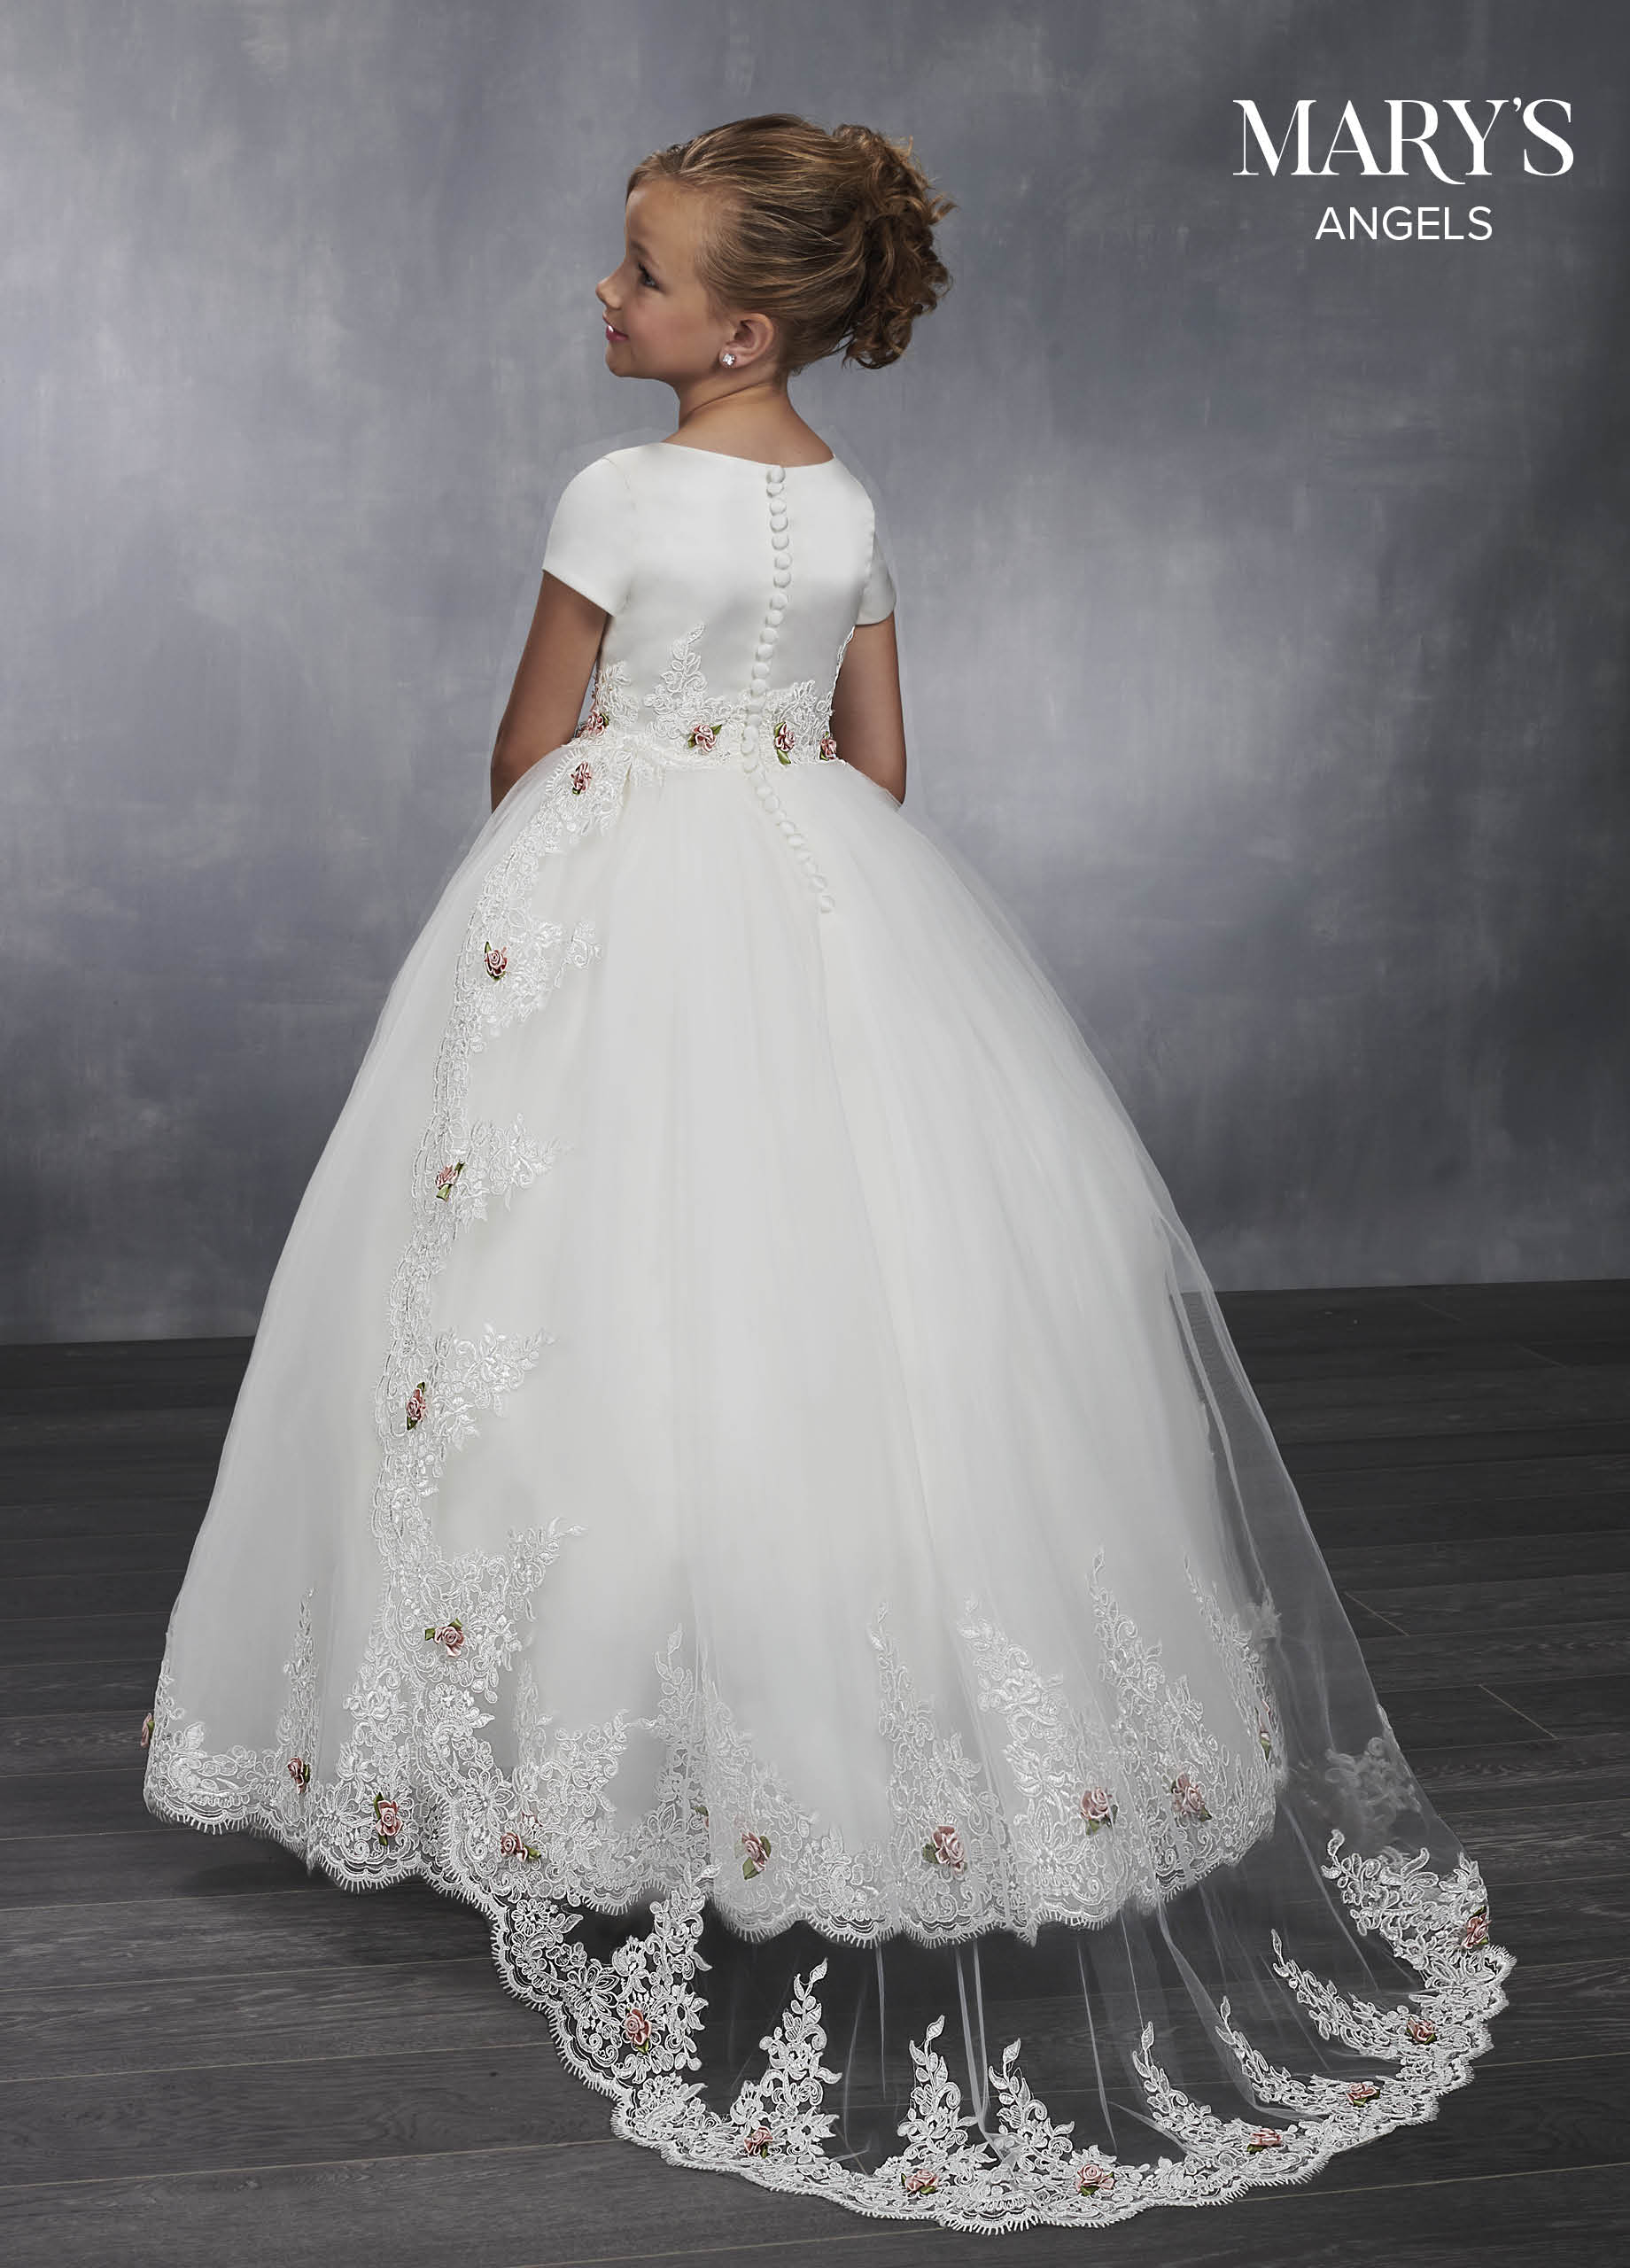 Angel Flower Girl Dresses   Mary's Angels   Style - MB9035